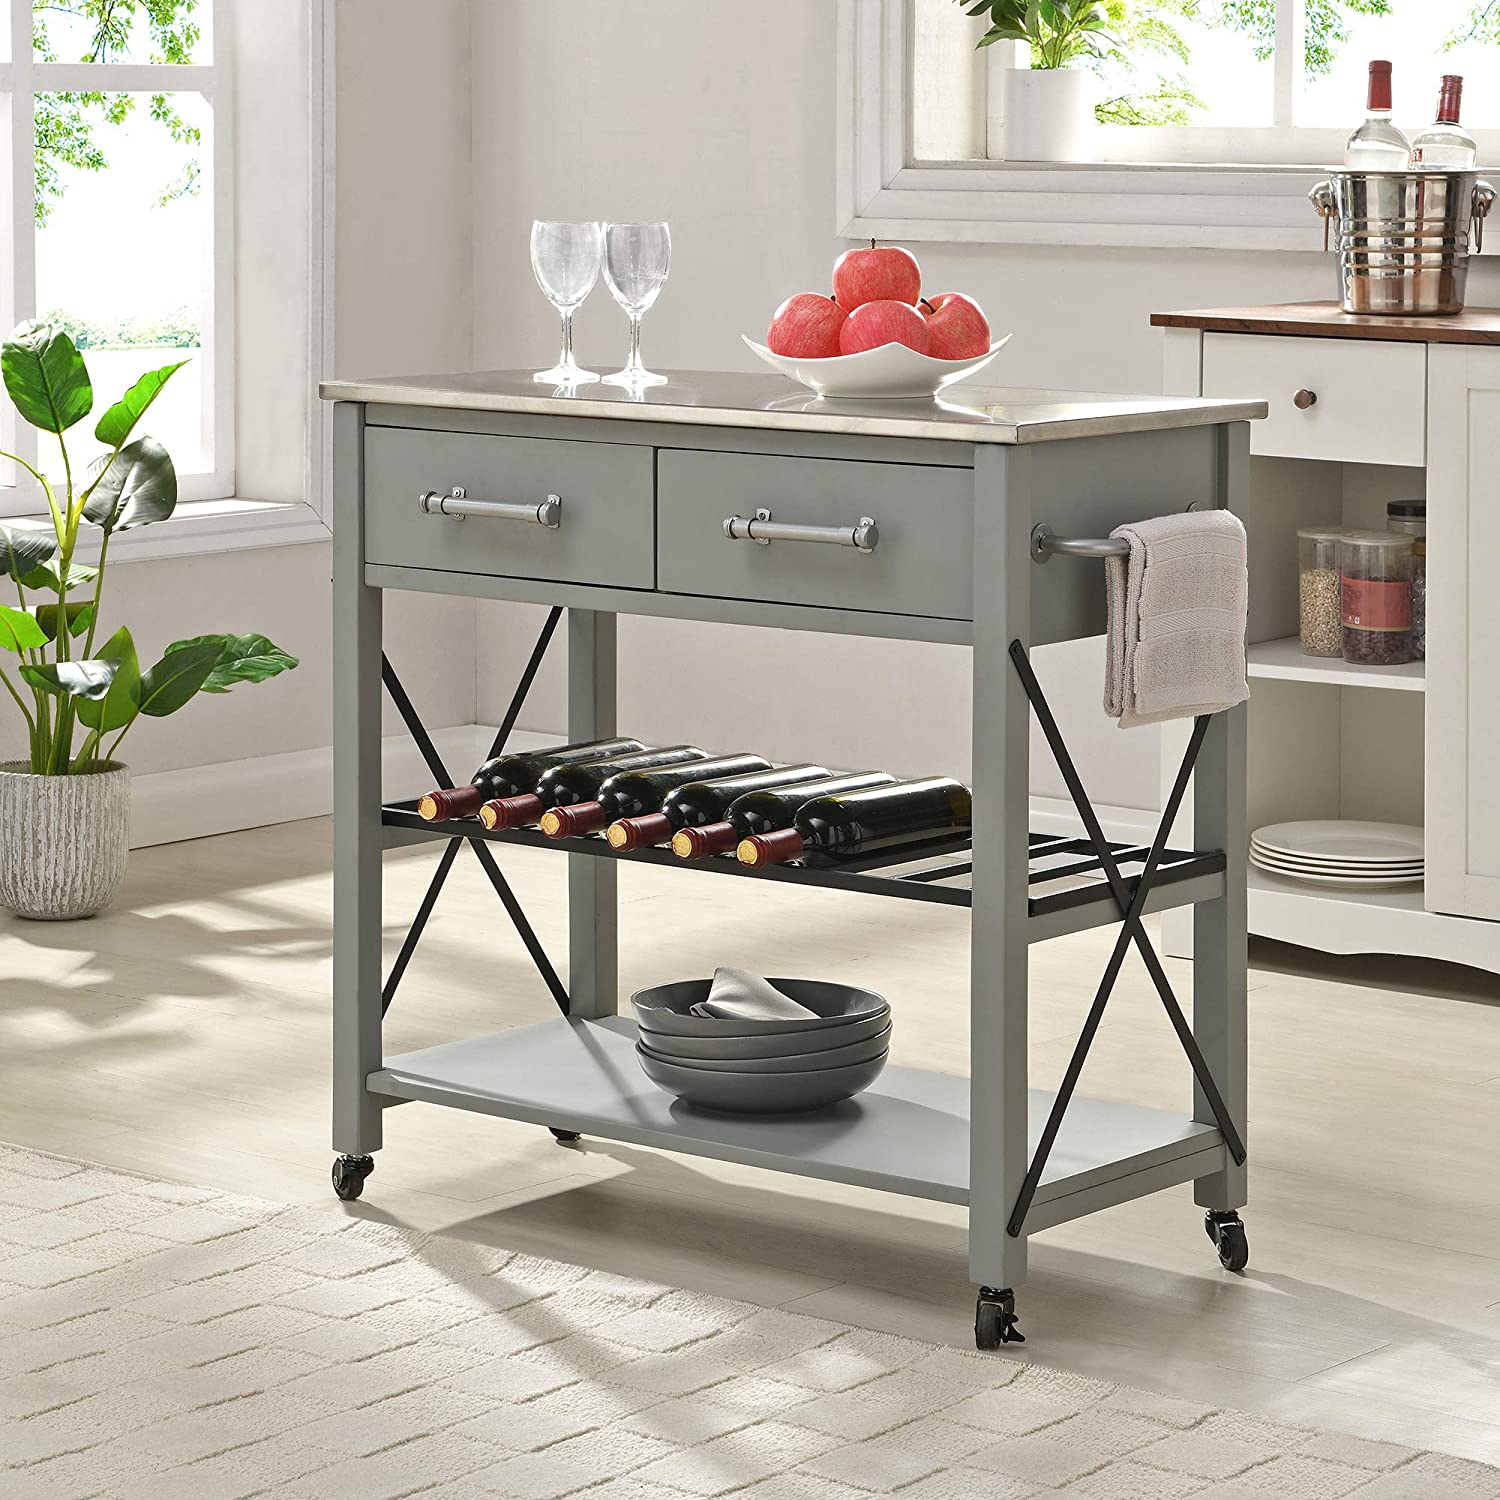 FirsTime & Co. Gray Steel Aurora Farmhouse Kitchen Cart, American Designed, Gray, 31.5 x 16 x 31.5 inches